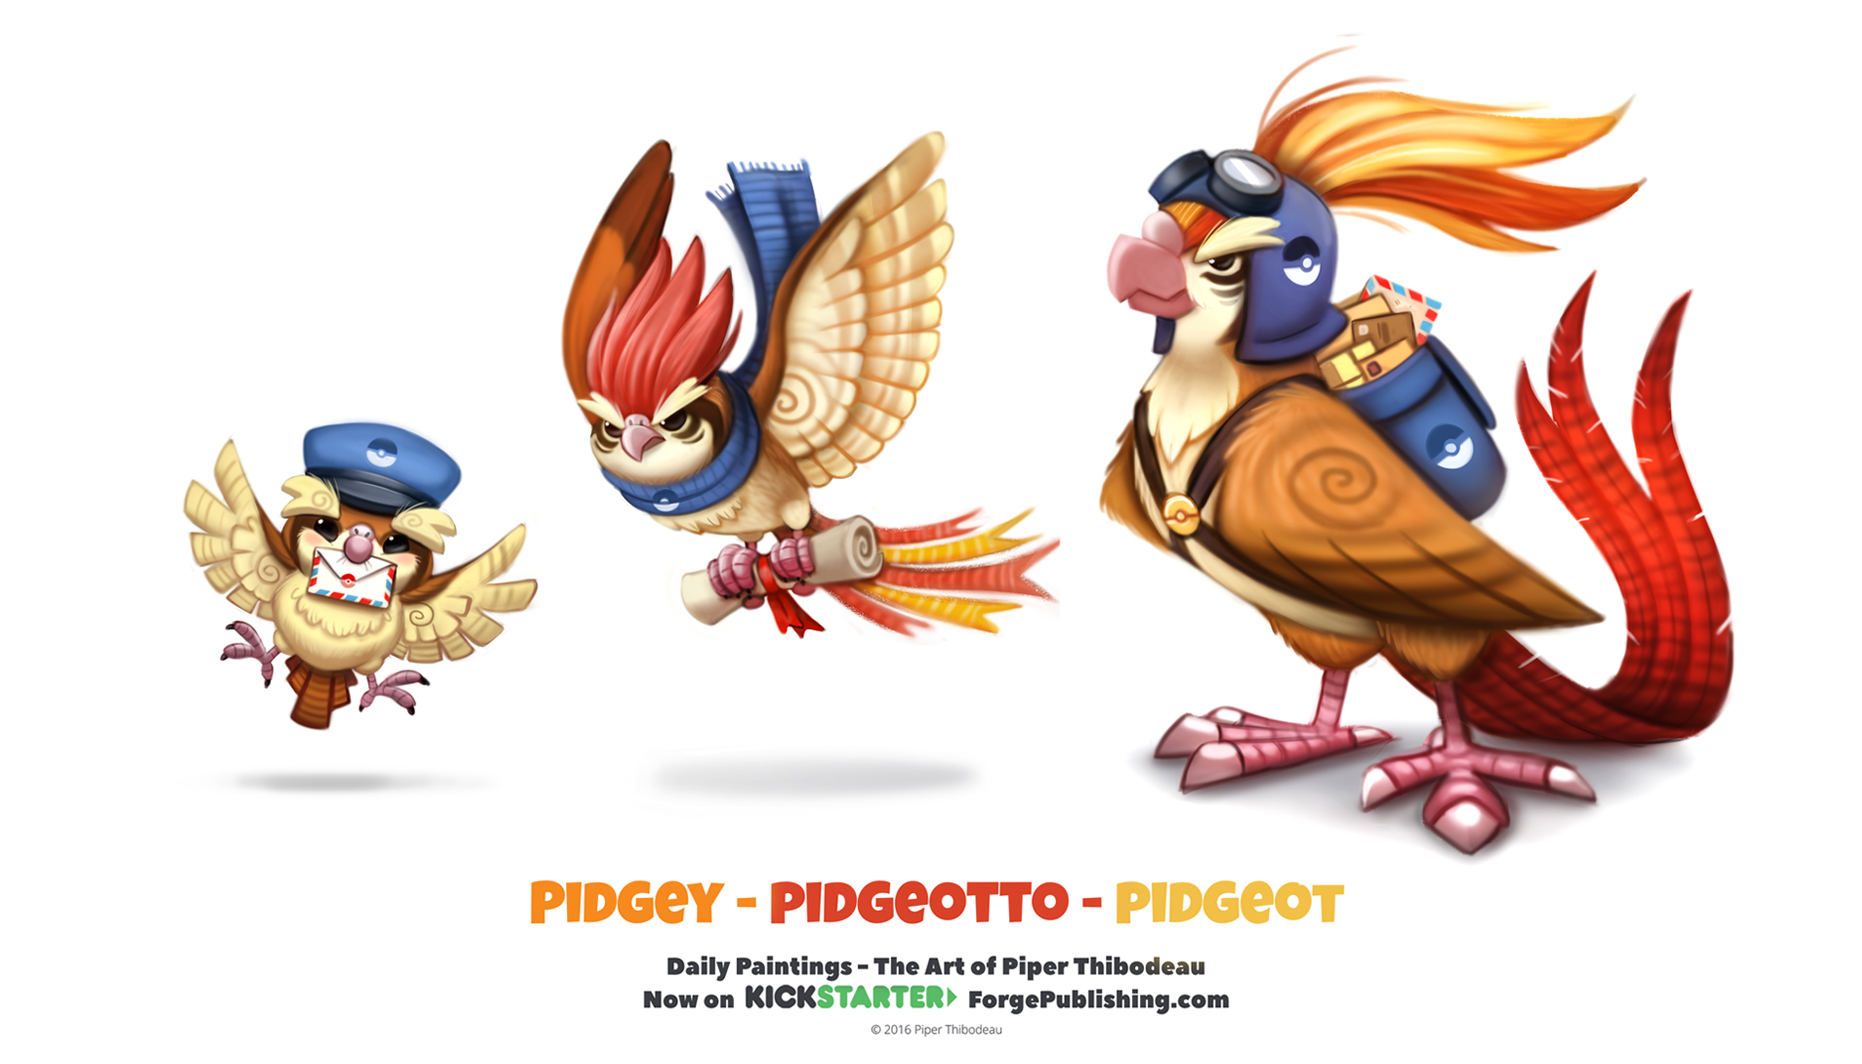 Pidgey - Pidgeotto - Pidgeot by Cryptid-Creations on DeviantArt